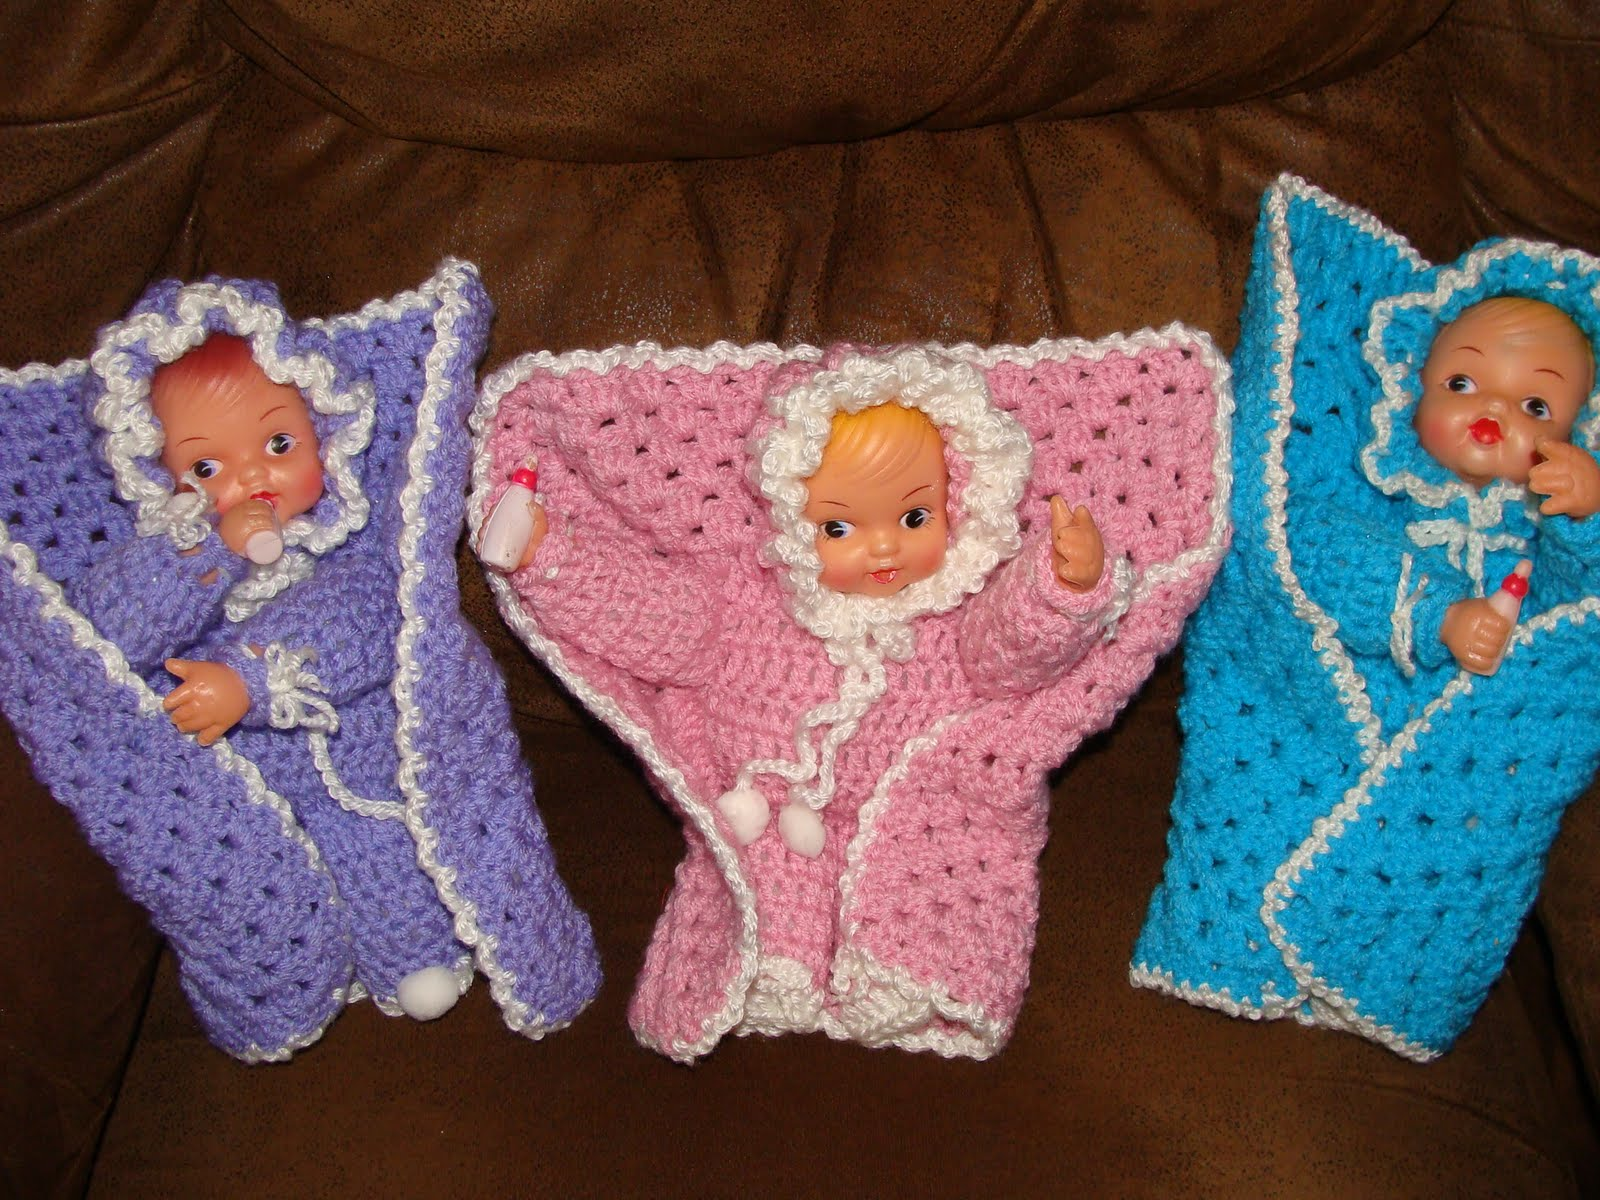 Crocheting Stuff : If you do stuff, stuff gets done: Crocheted baby dolls